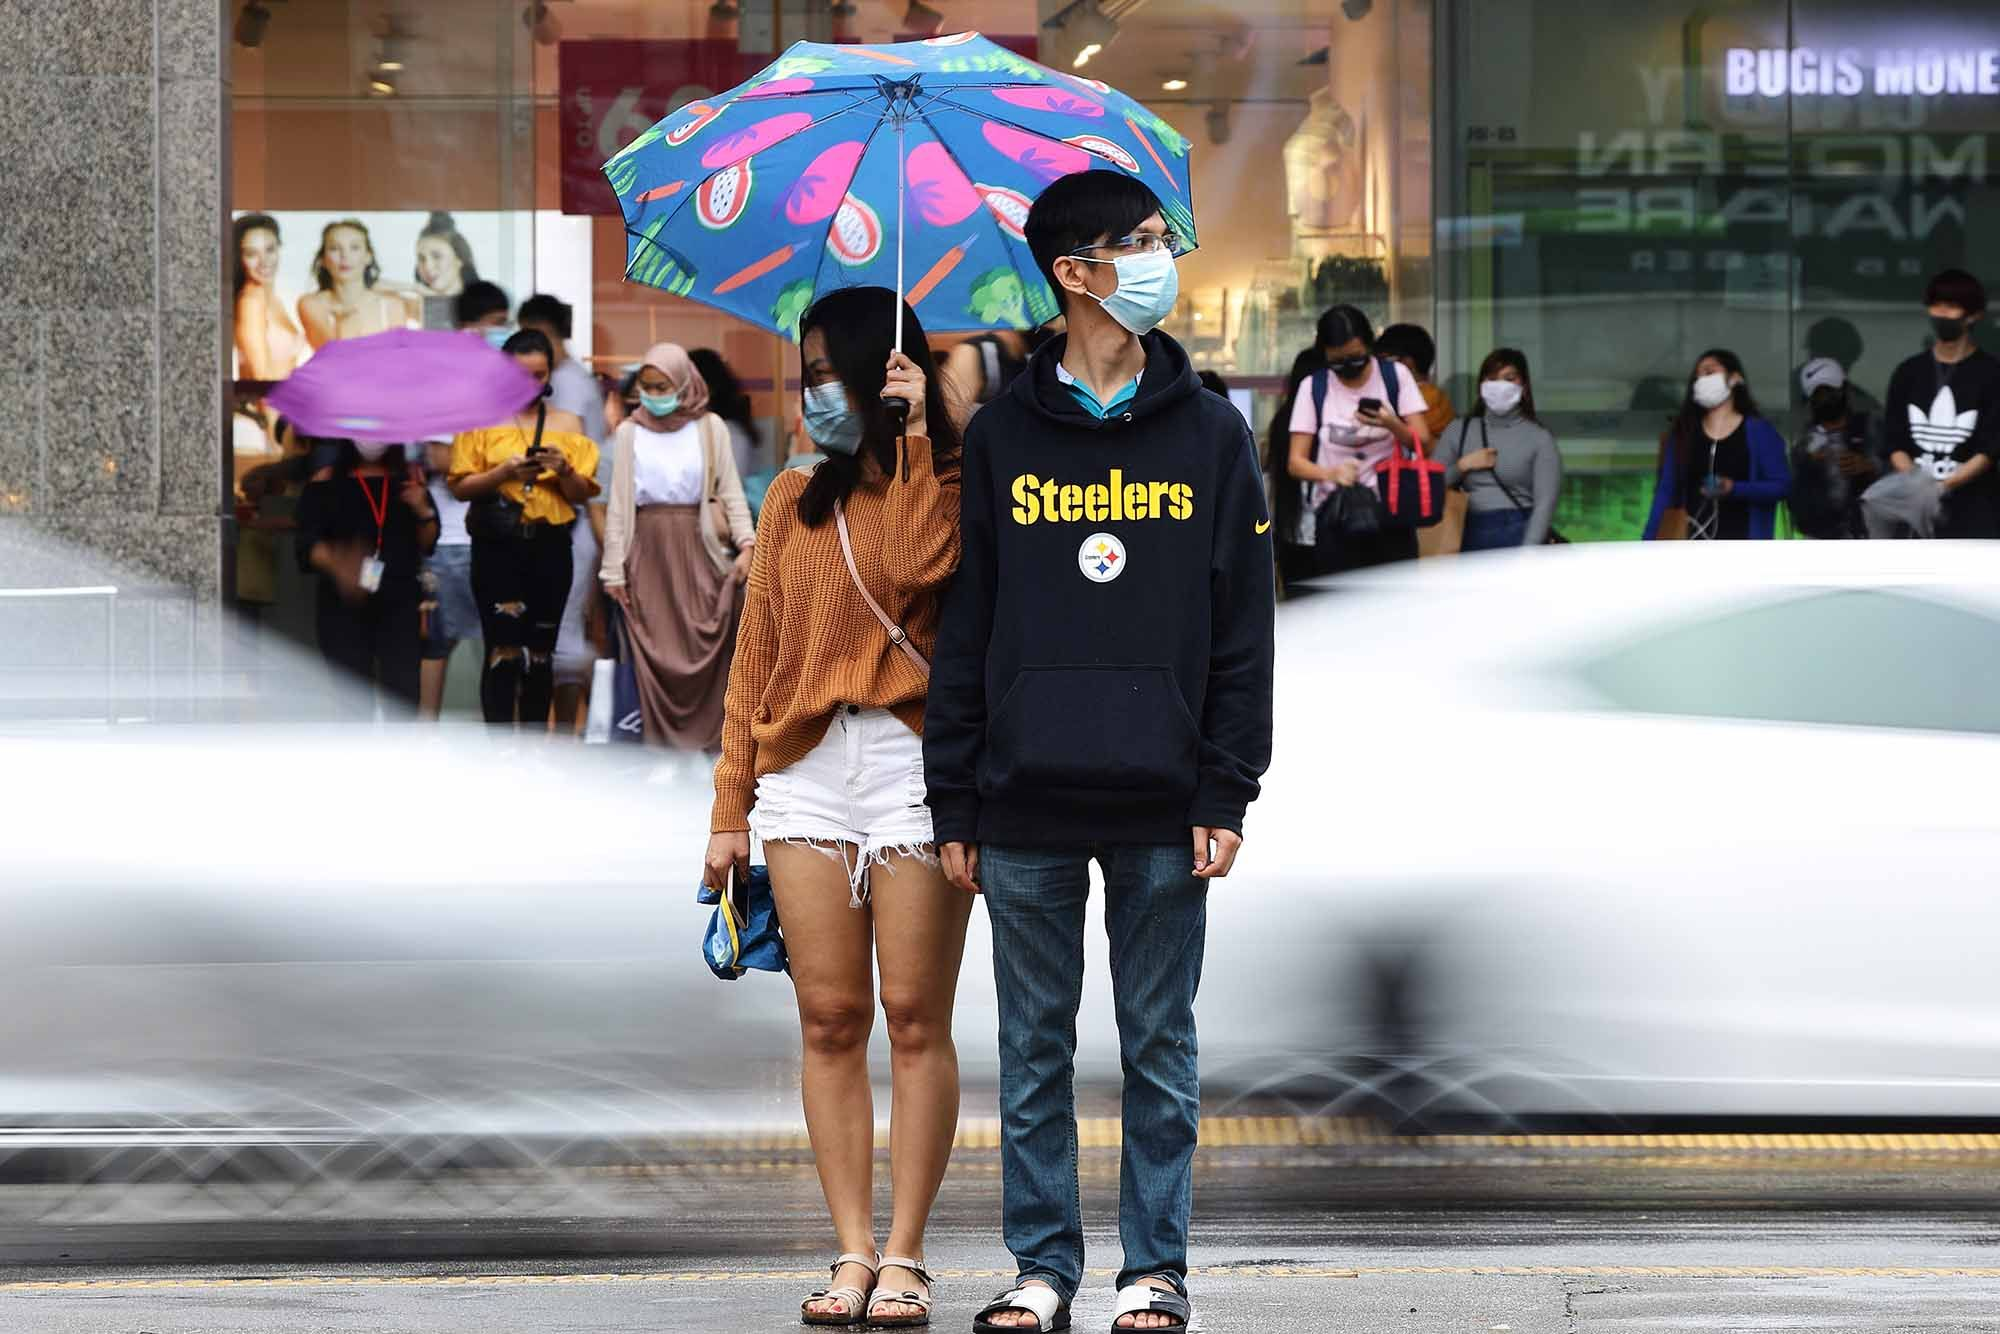 A couple wearing protective masks wait to cross a street in the rain. (Photo: Getty Images)